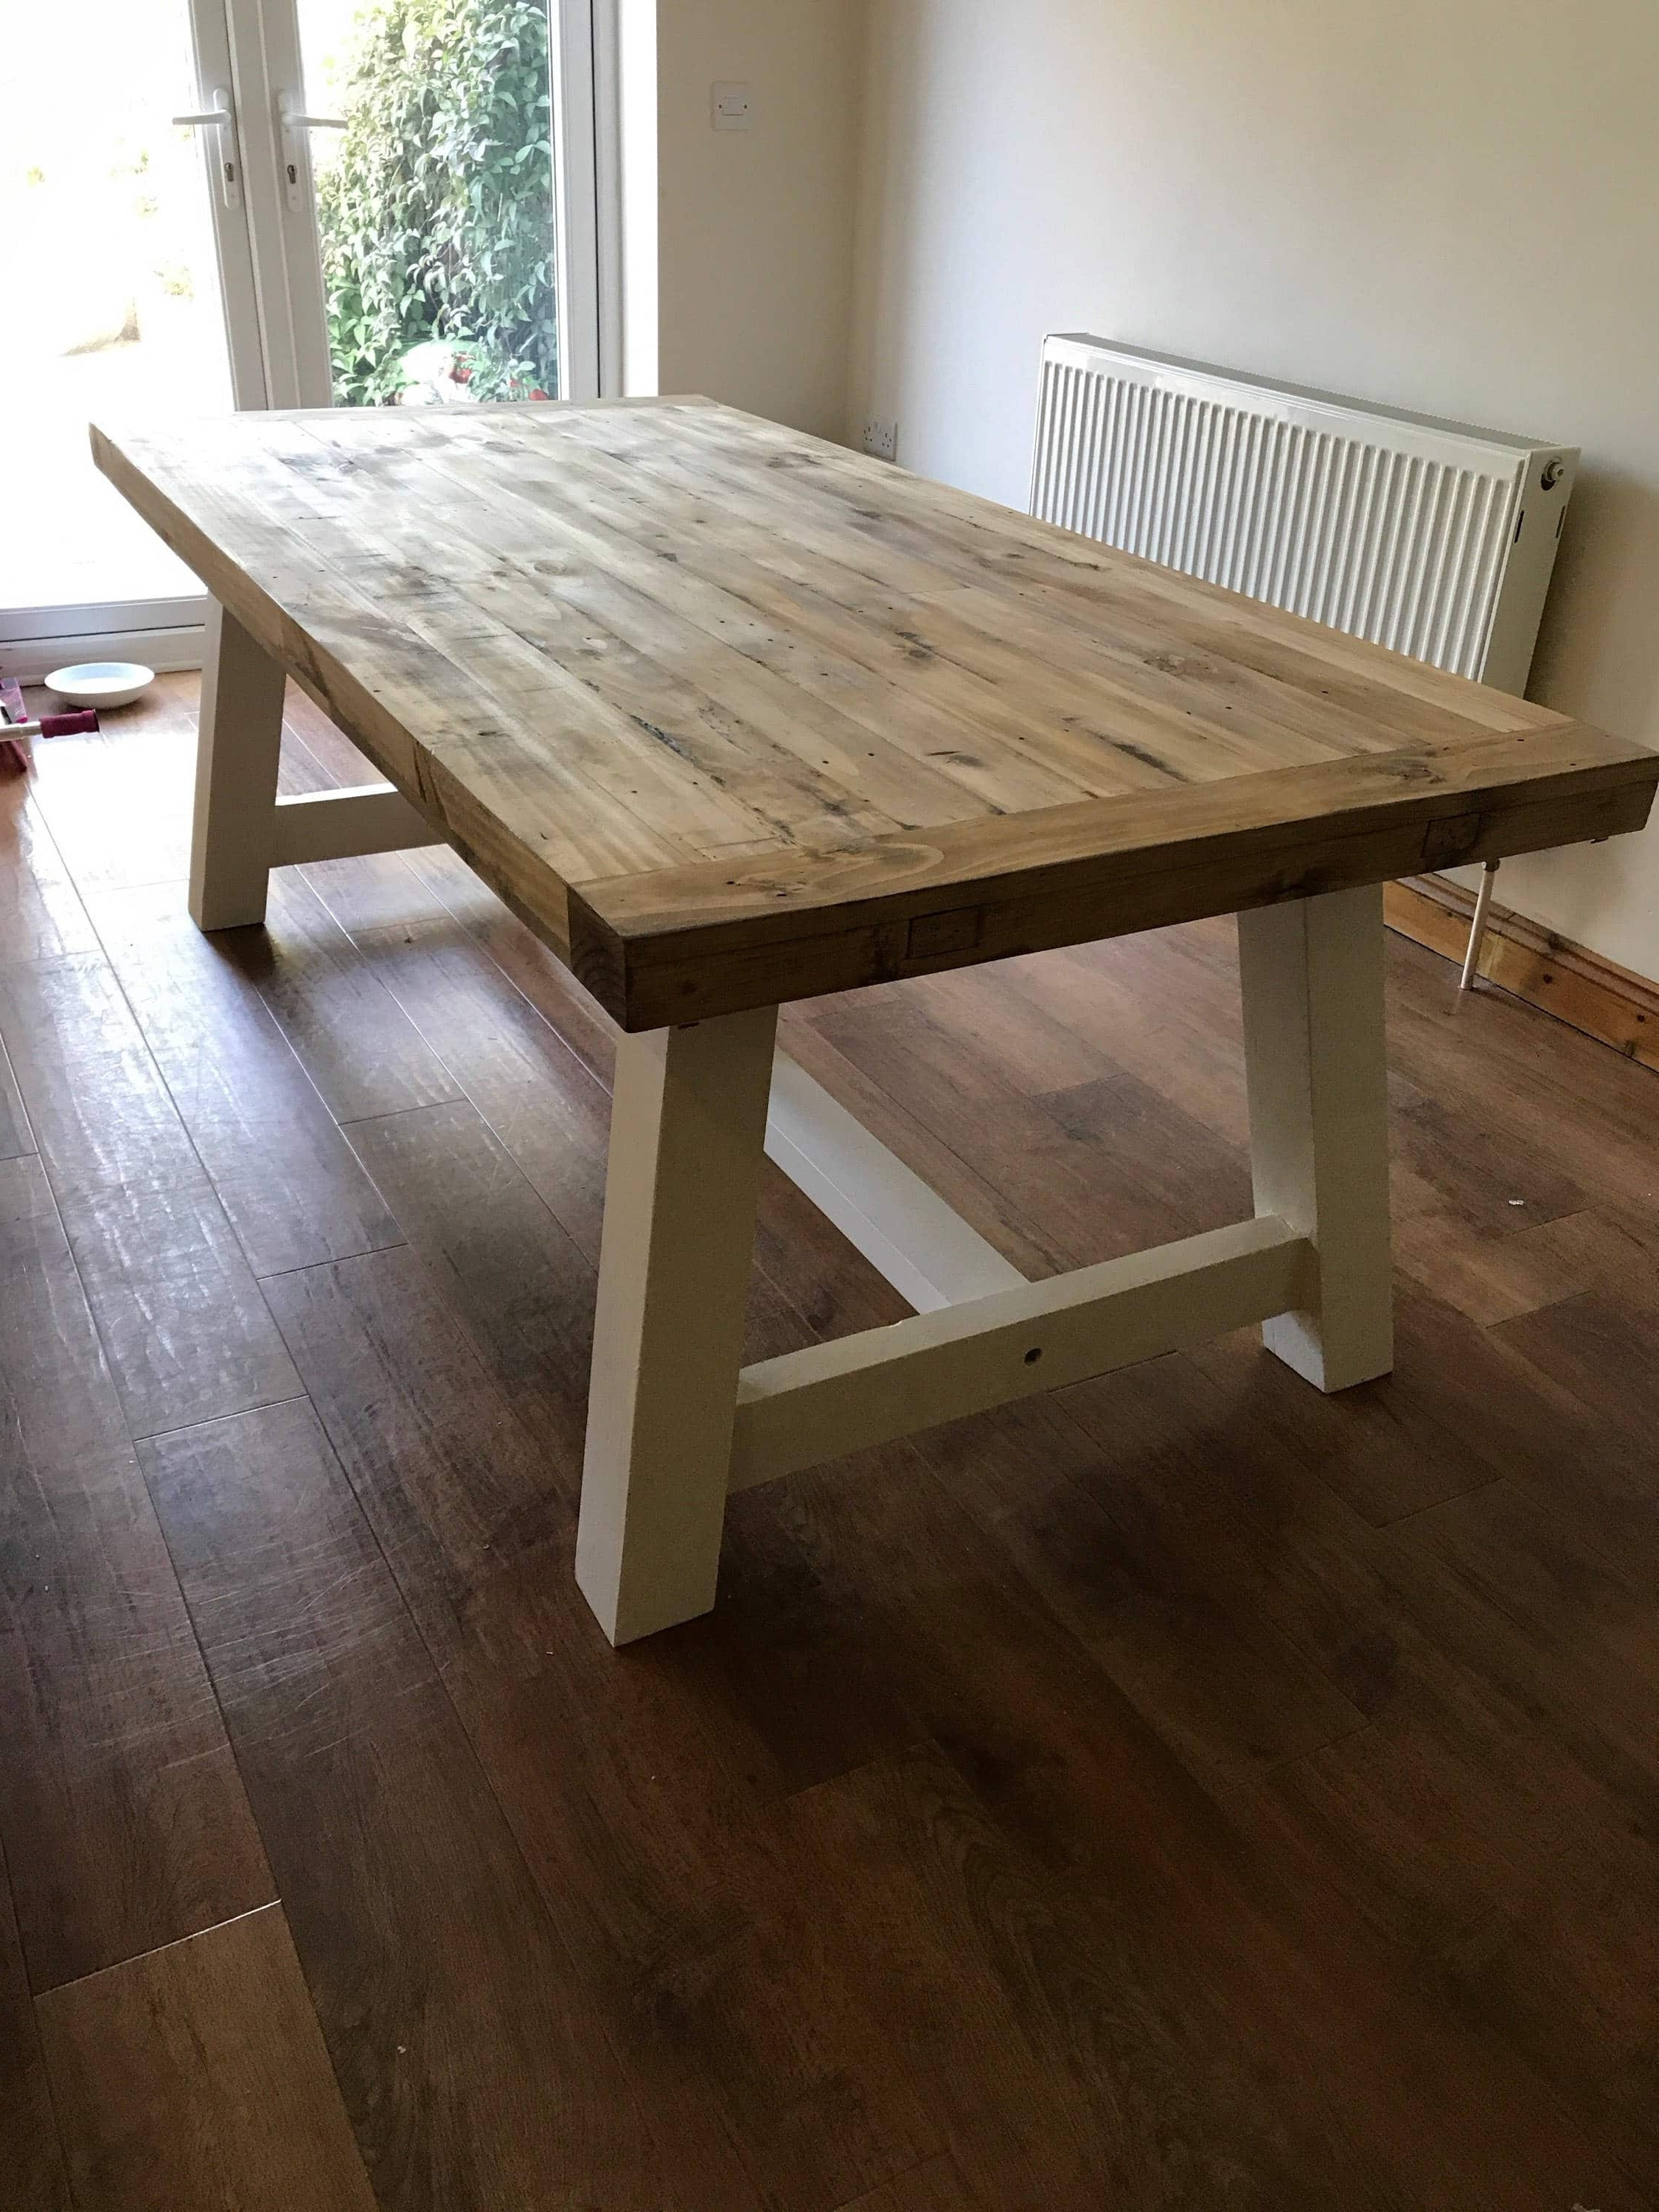 Widely Used Purbeck Shabby Chic Dining Table – Newco Interiors – Bespoke Joinery Throughout Shabby Chic Dining Sets (View 5 of 25)